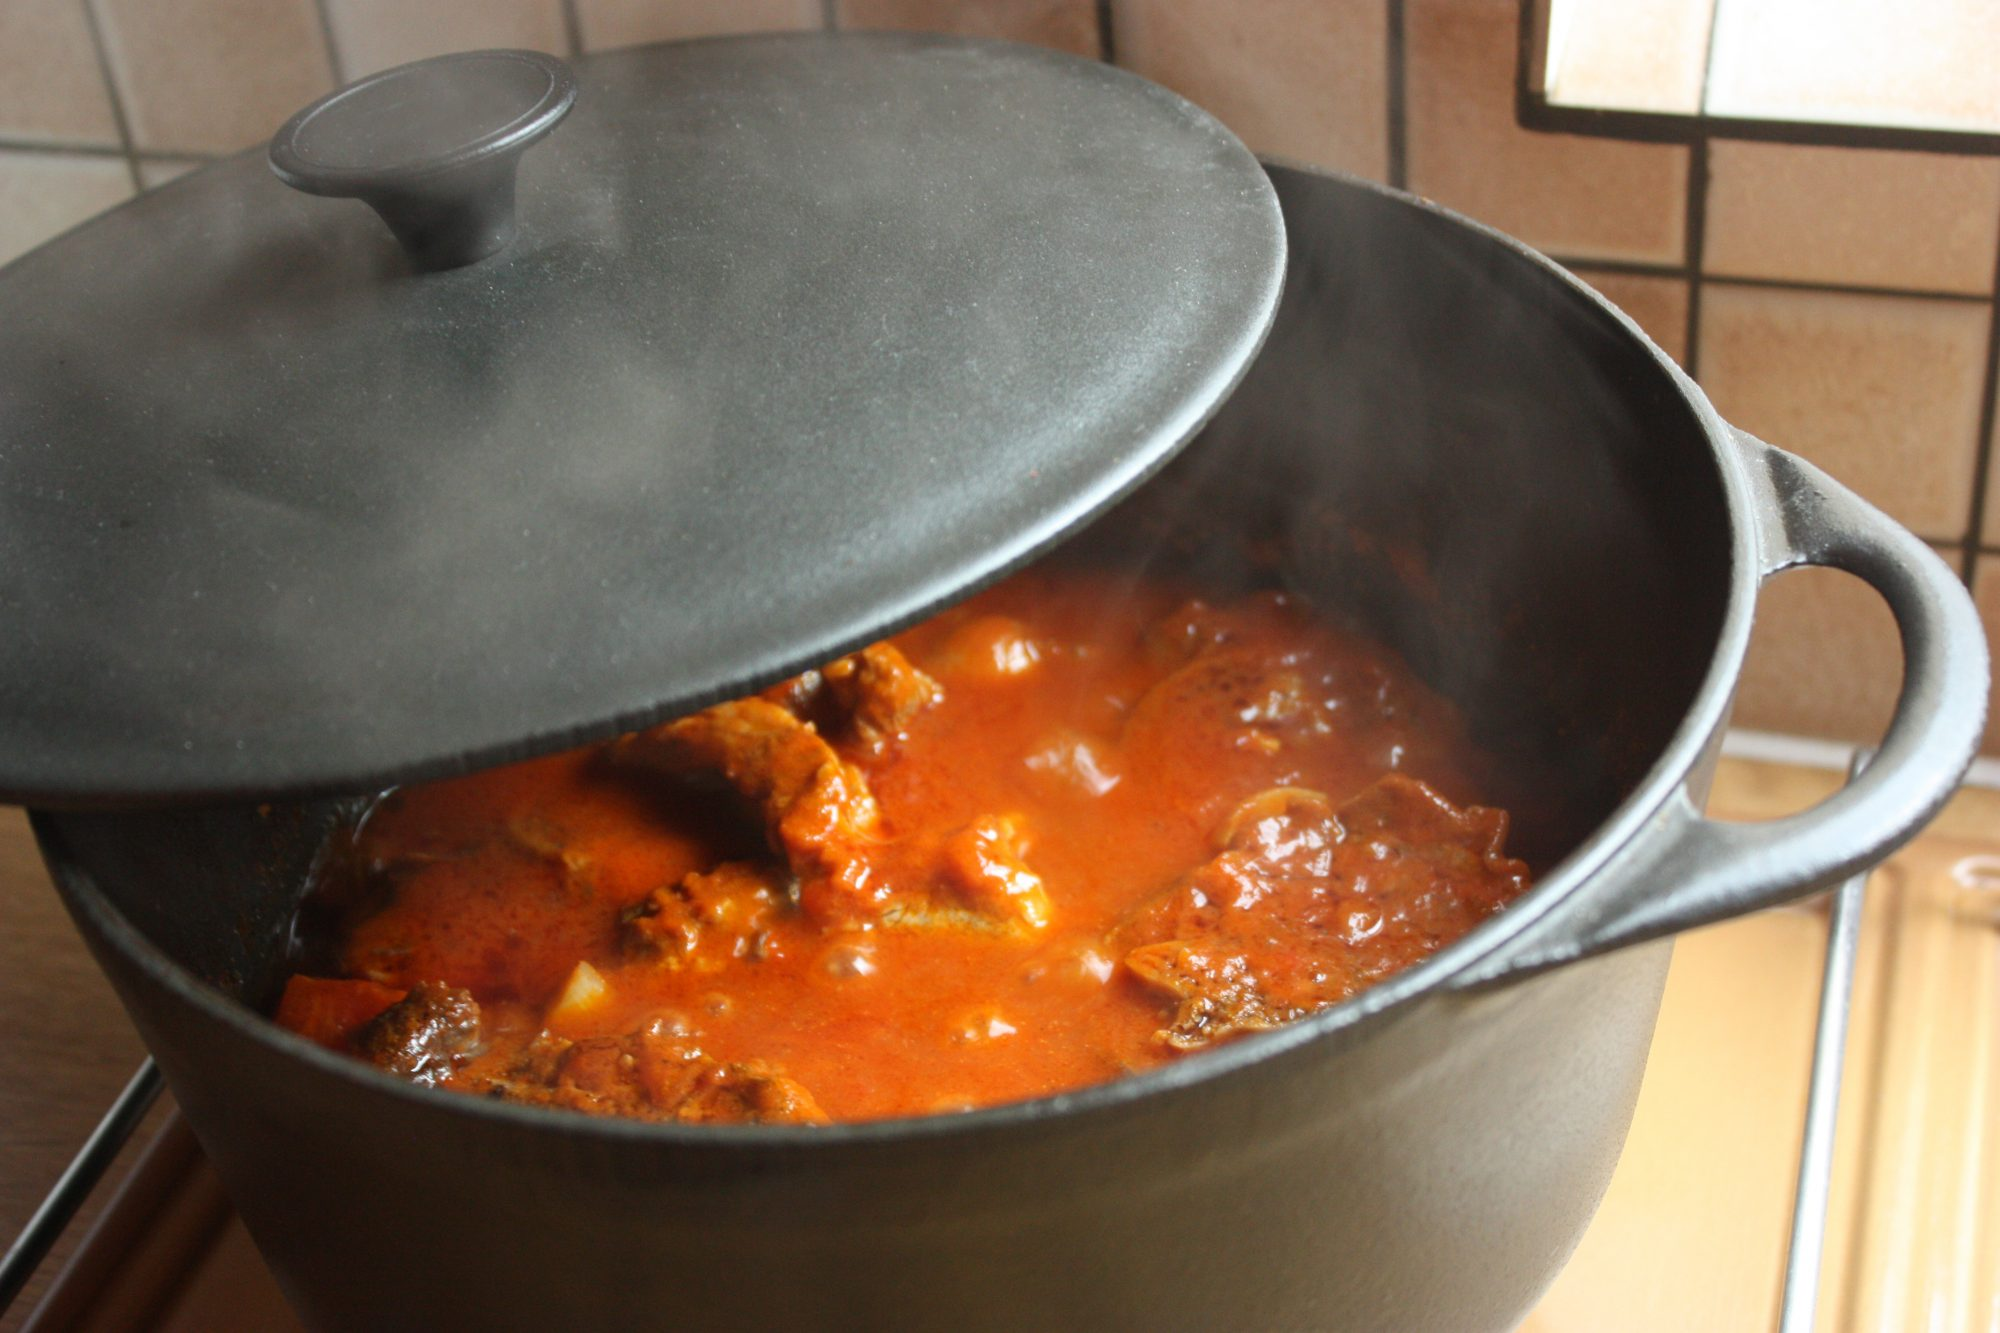 Stew being cooked in a cast iron dutch oven